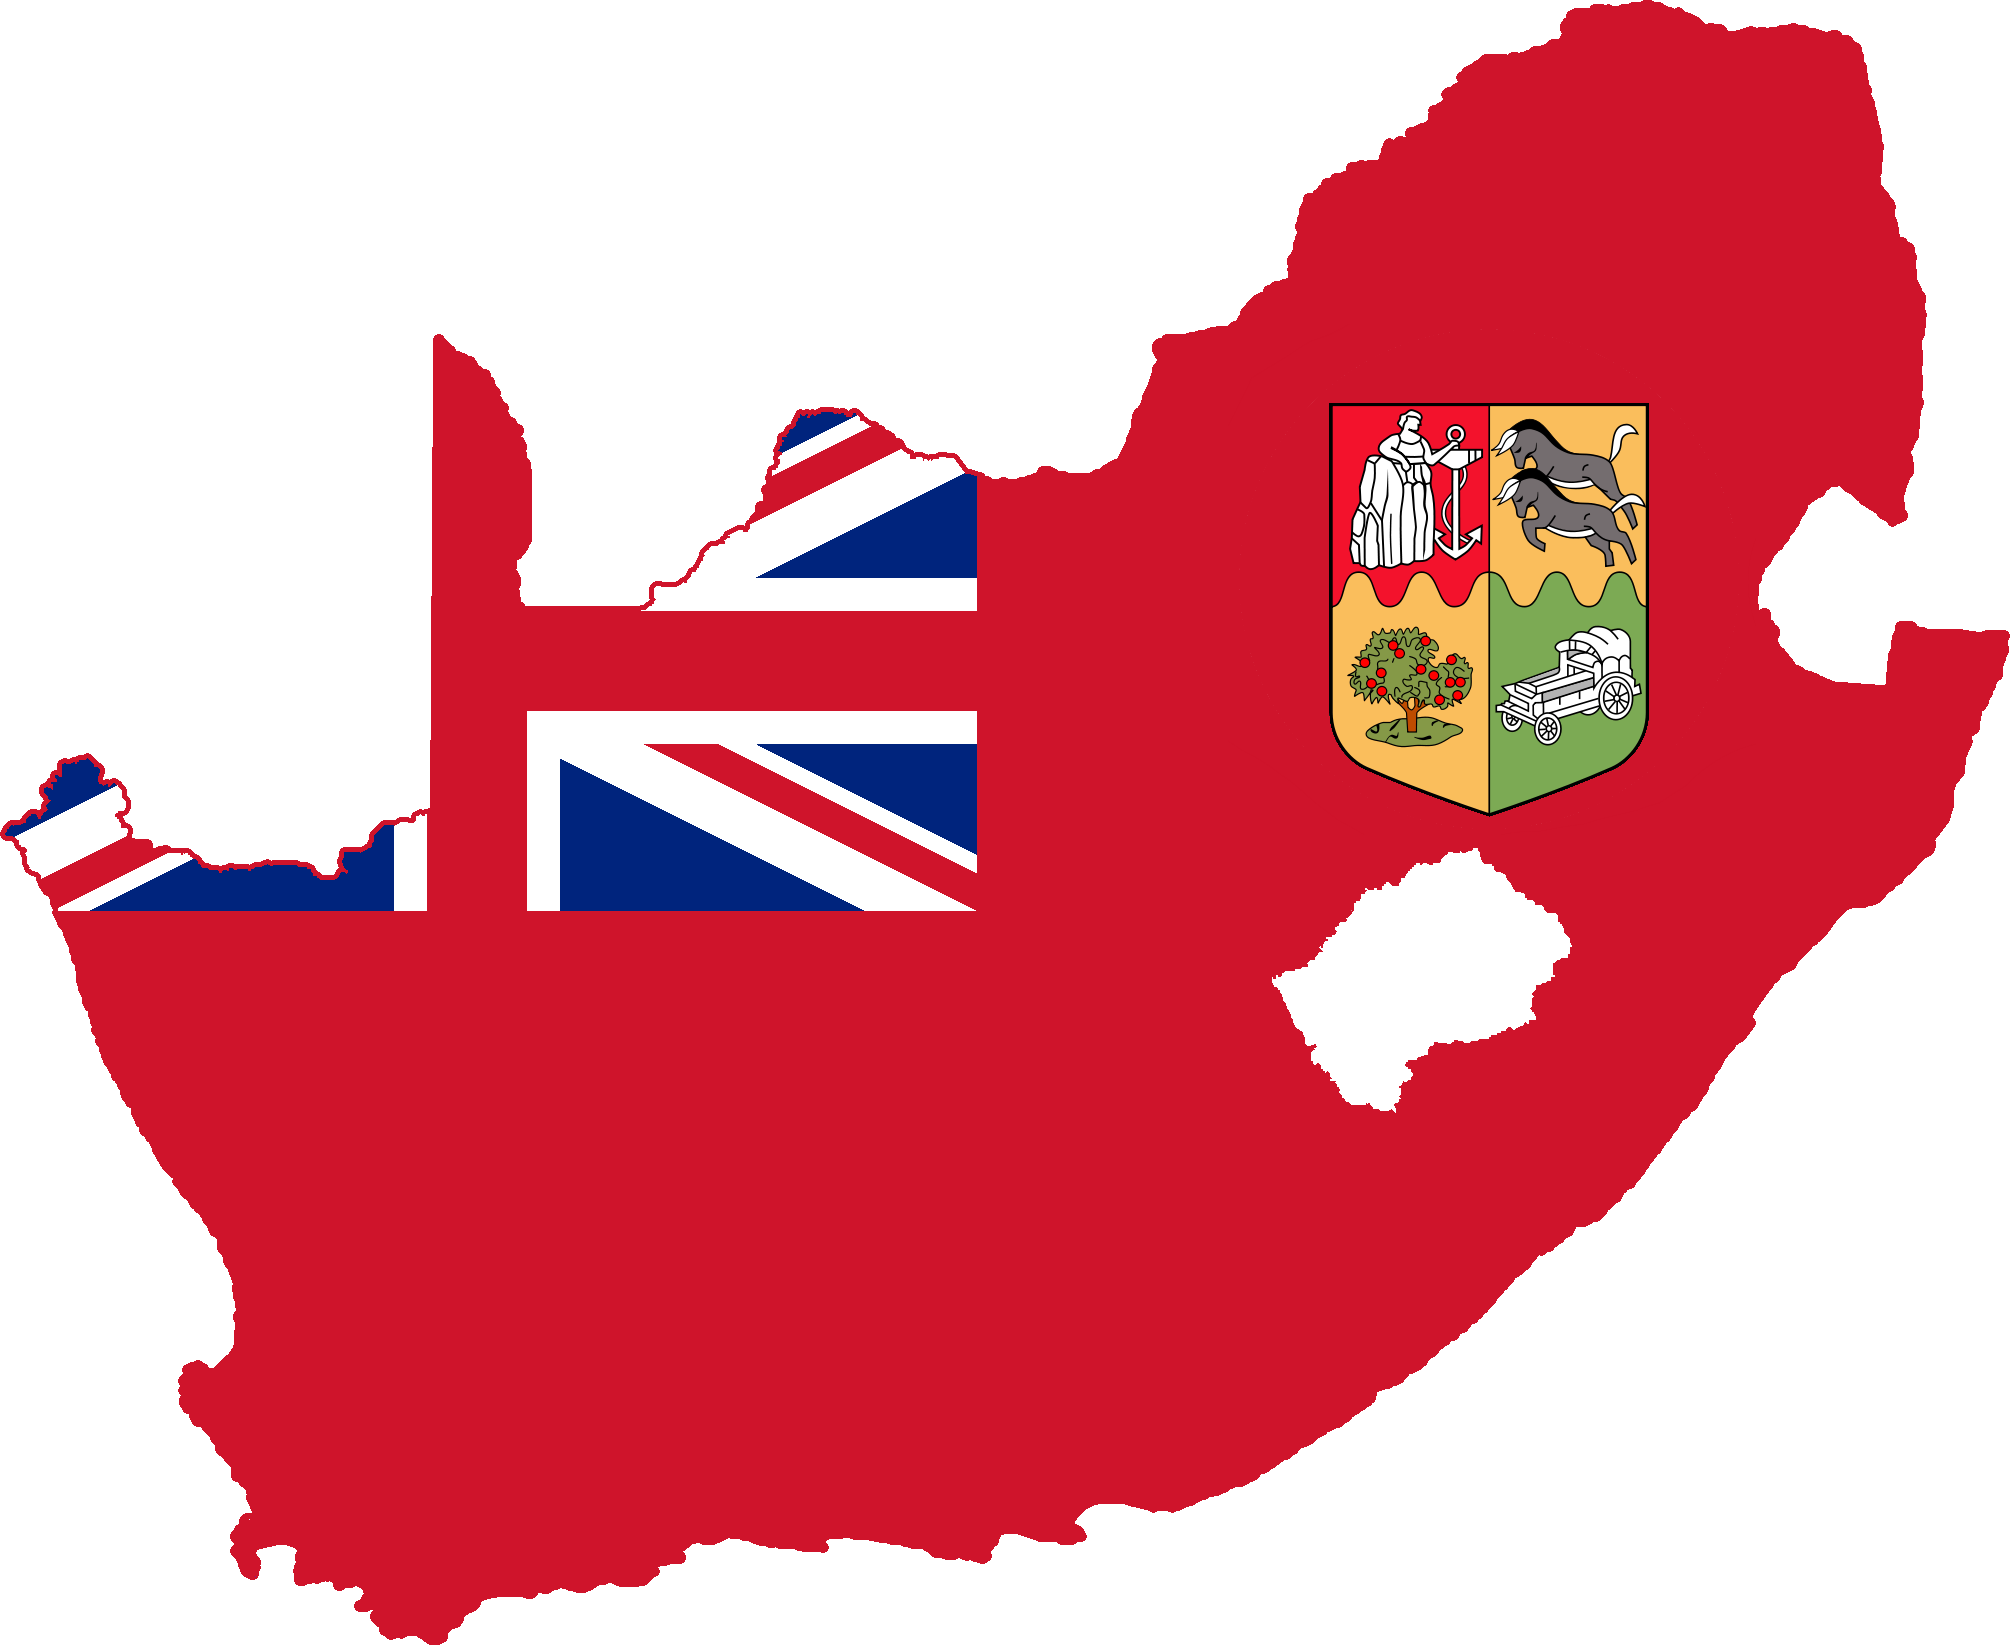 South africa map png. File flag of the